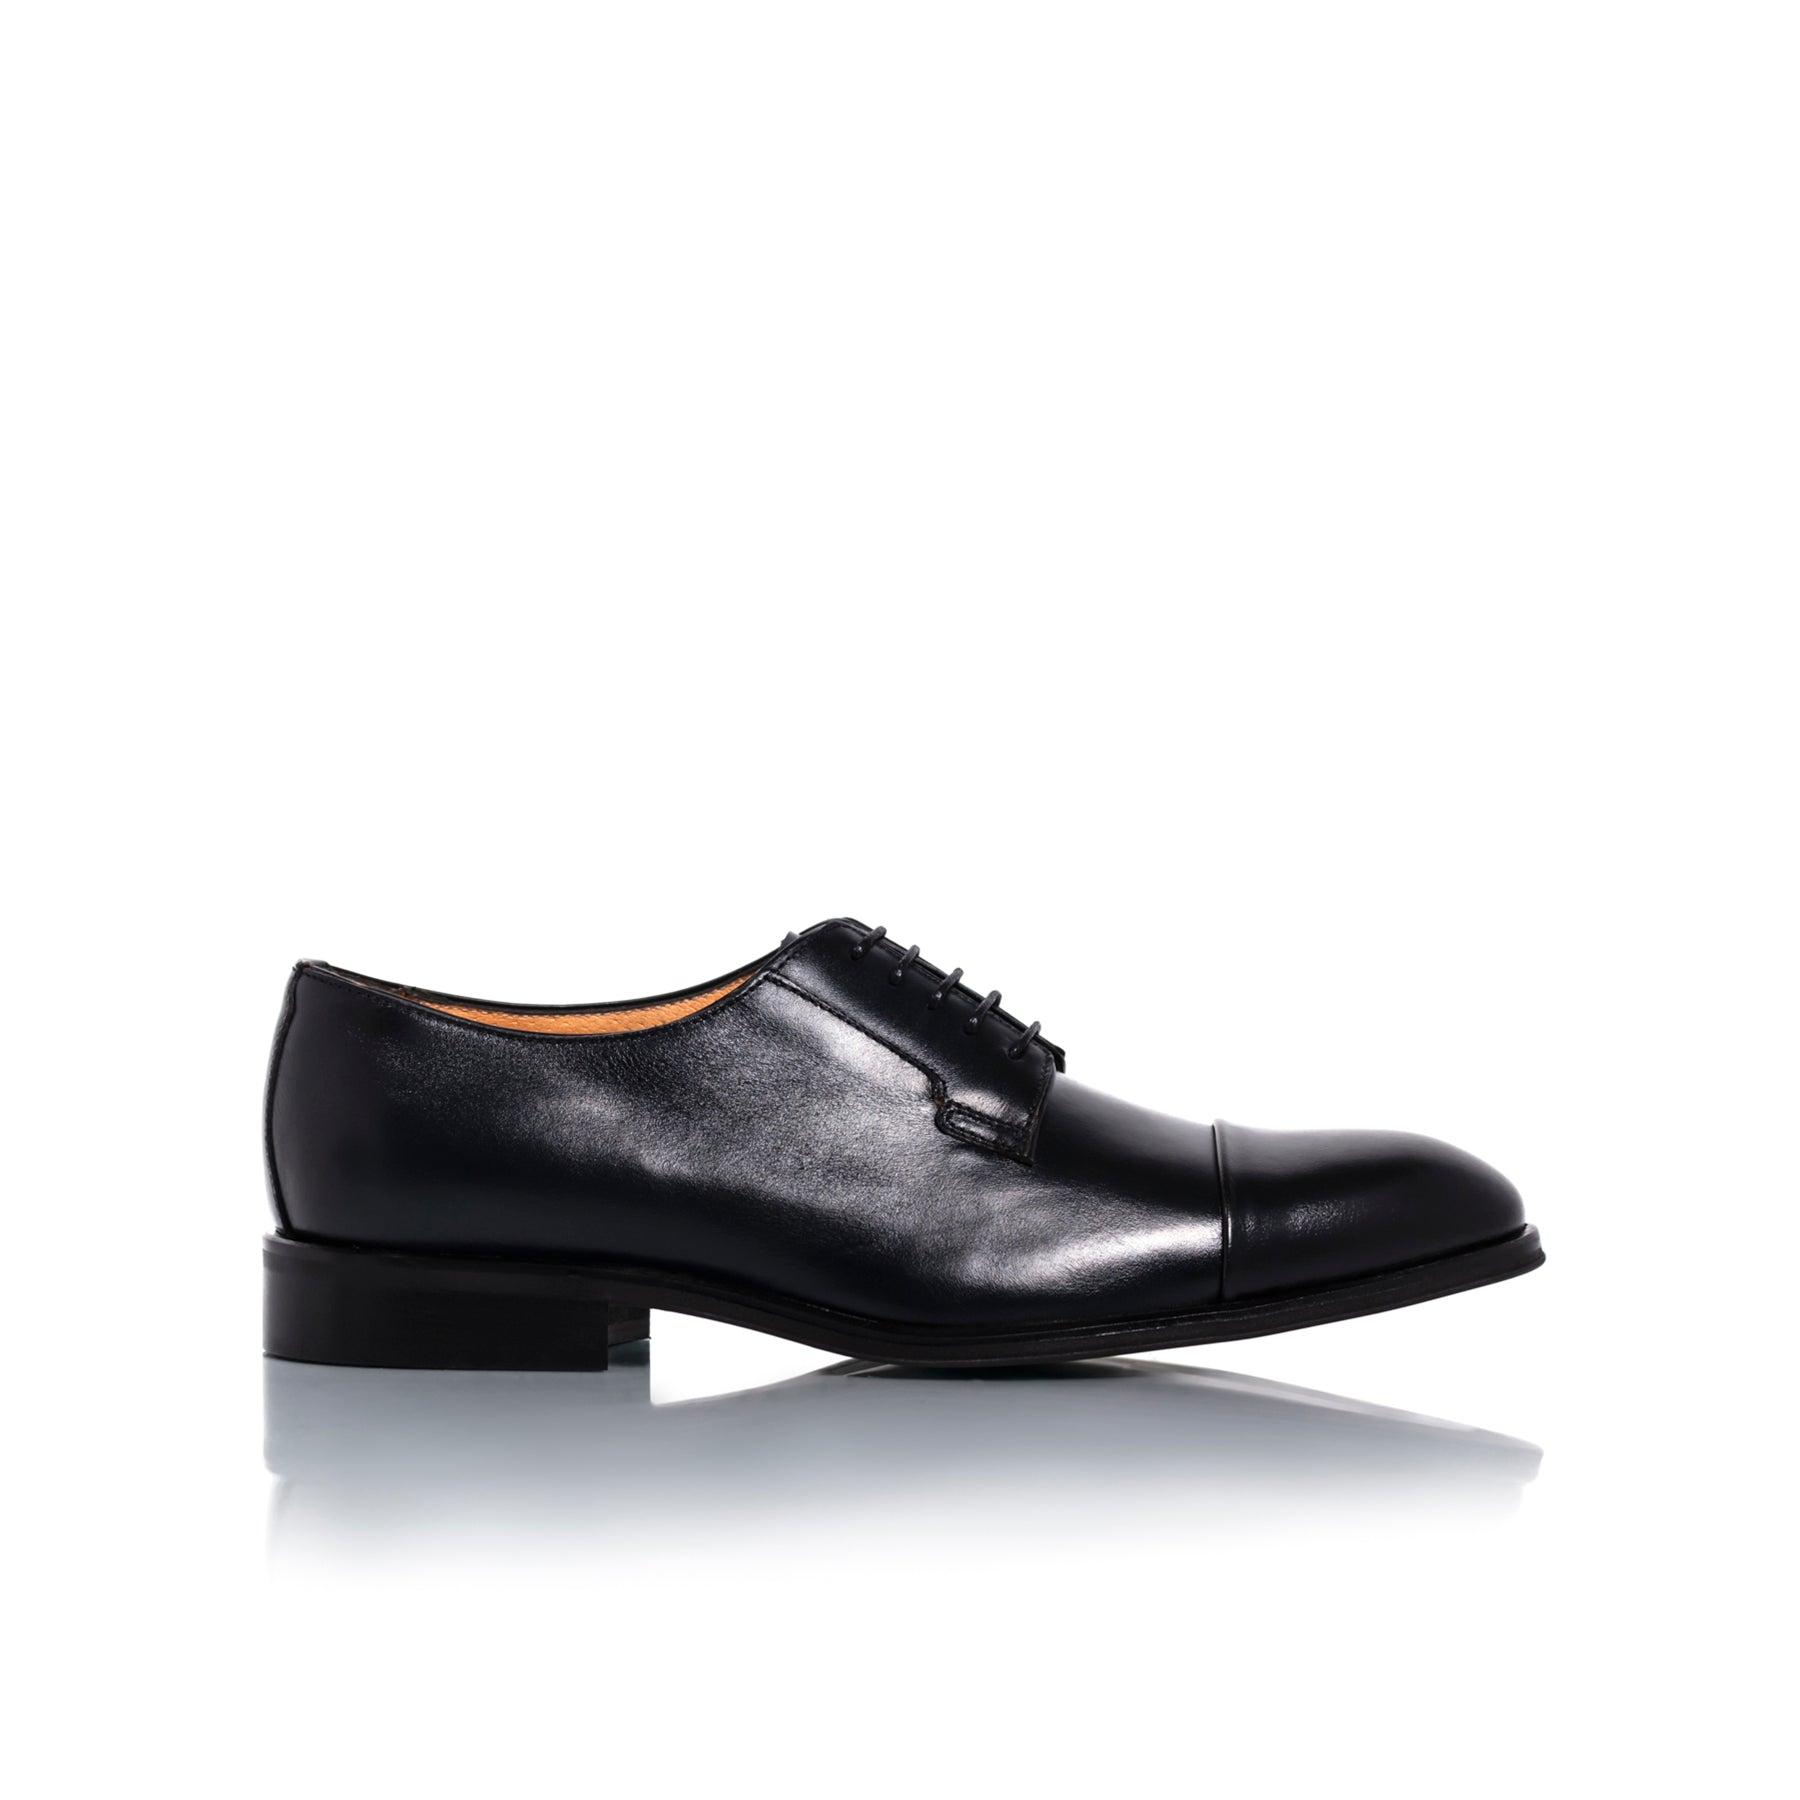 Barack Navy Leather Shoes